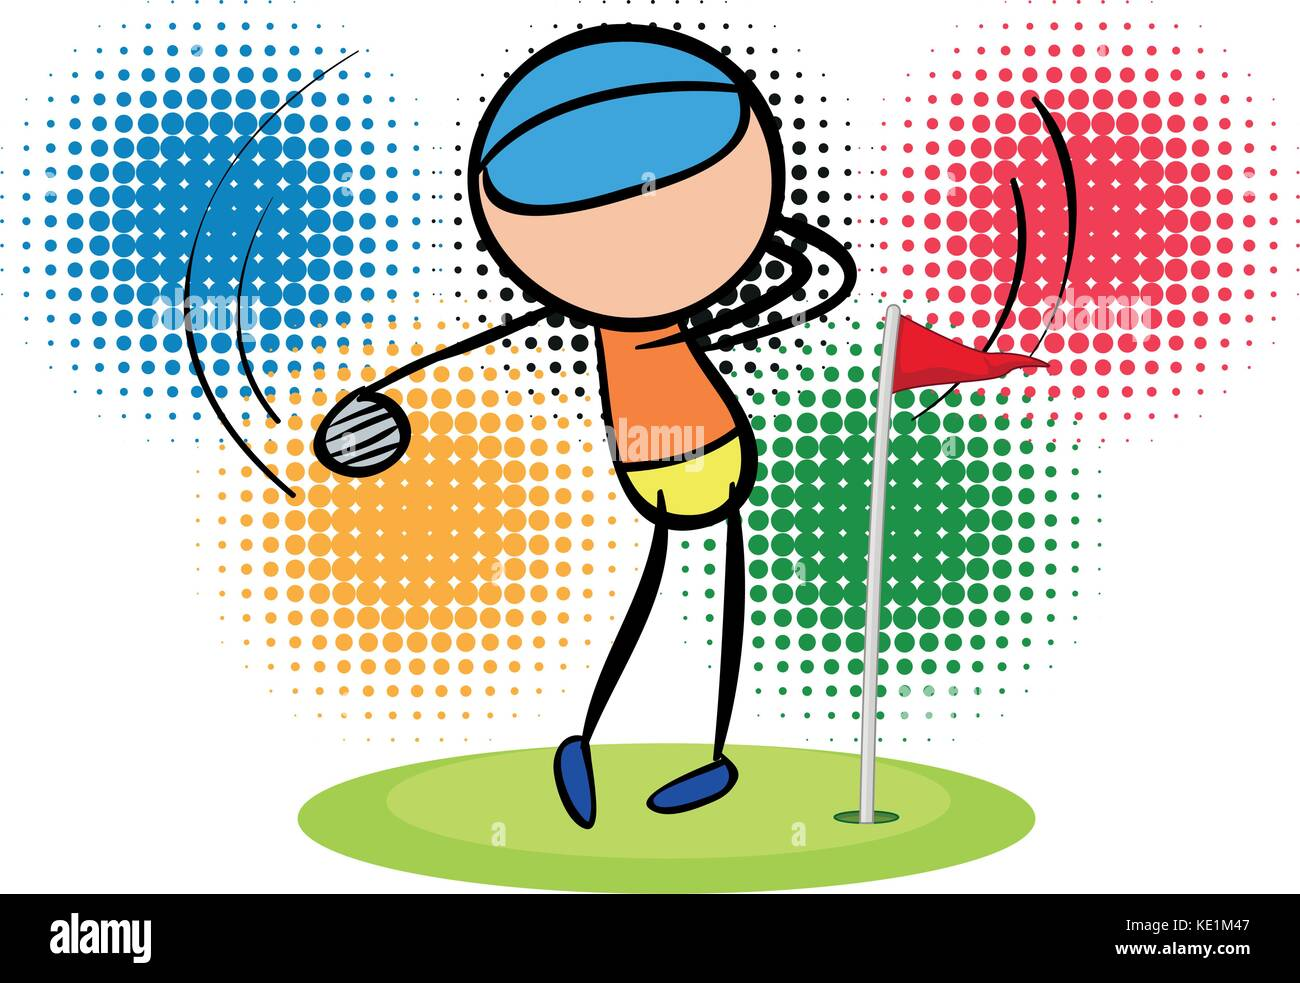 Olympics theme with golf player illustration - Stock Vector